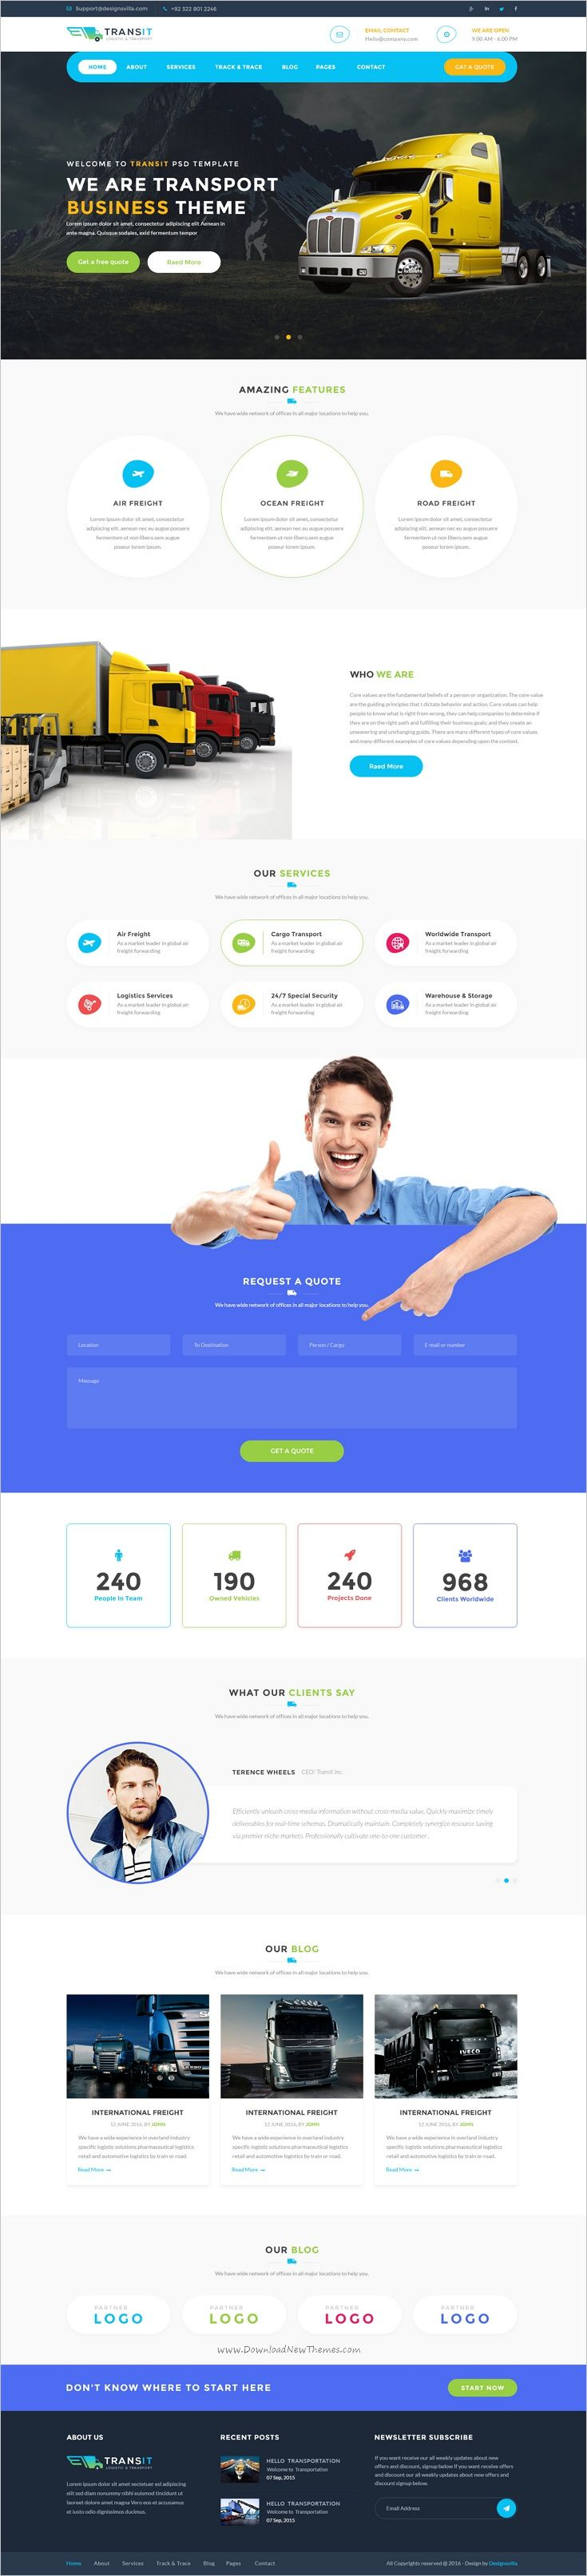 Transport is #PSD template created for #webdesign #cargo #delivery logistics, trucking, transportation companies and small freight business websites download now➩ https://themeforest.net/item/transport-logistics-transportation-business-psd-template/18996996?ref=Datasata